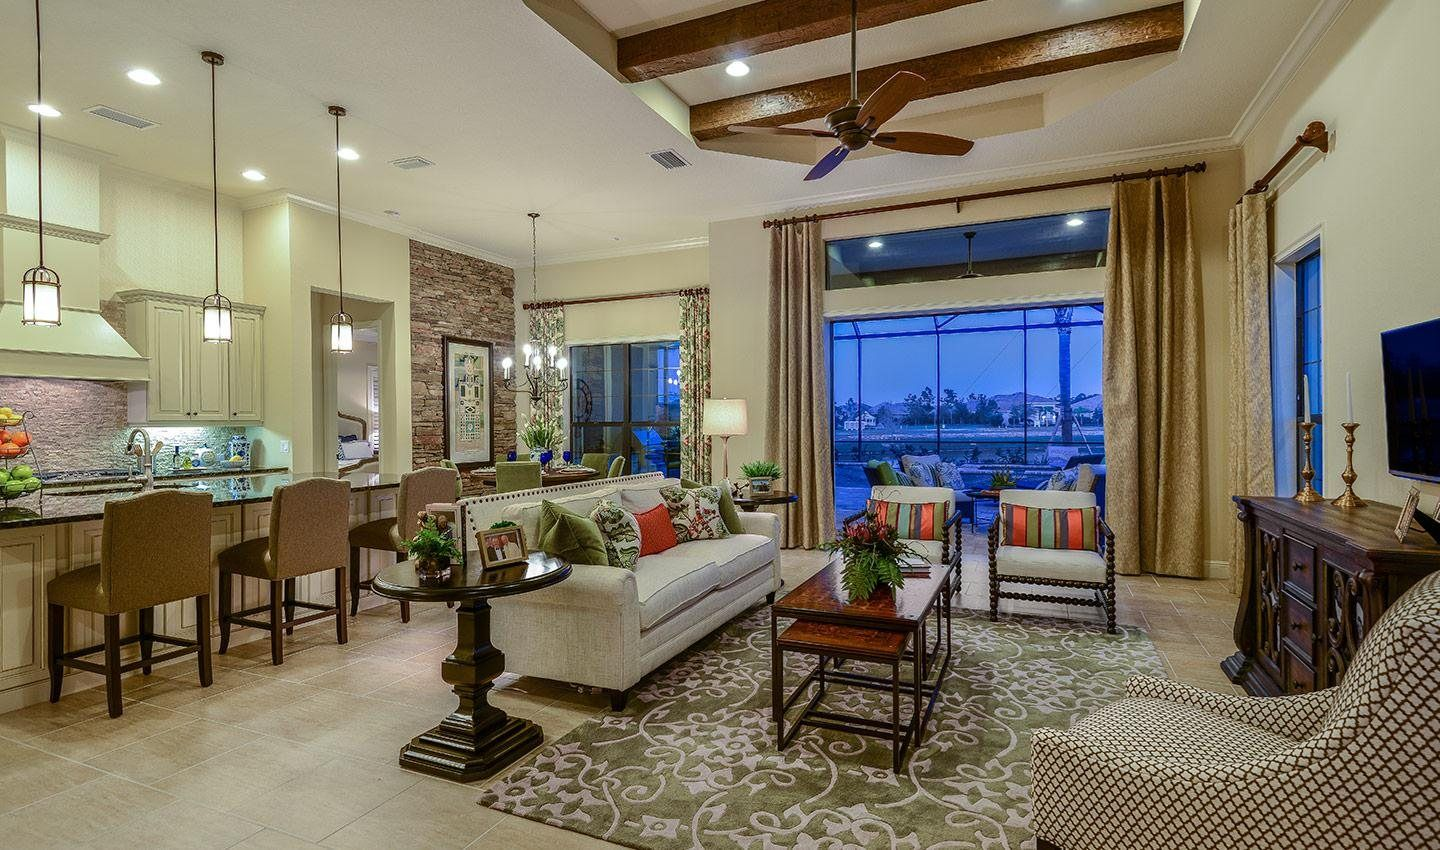 Living Area featured in the Montecito By Neal Signature Homes in Sarasota-Bradenton, FL